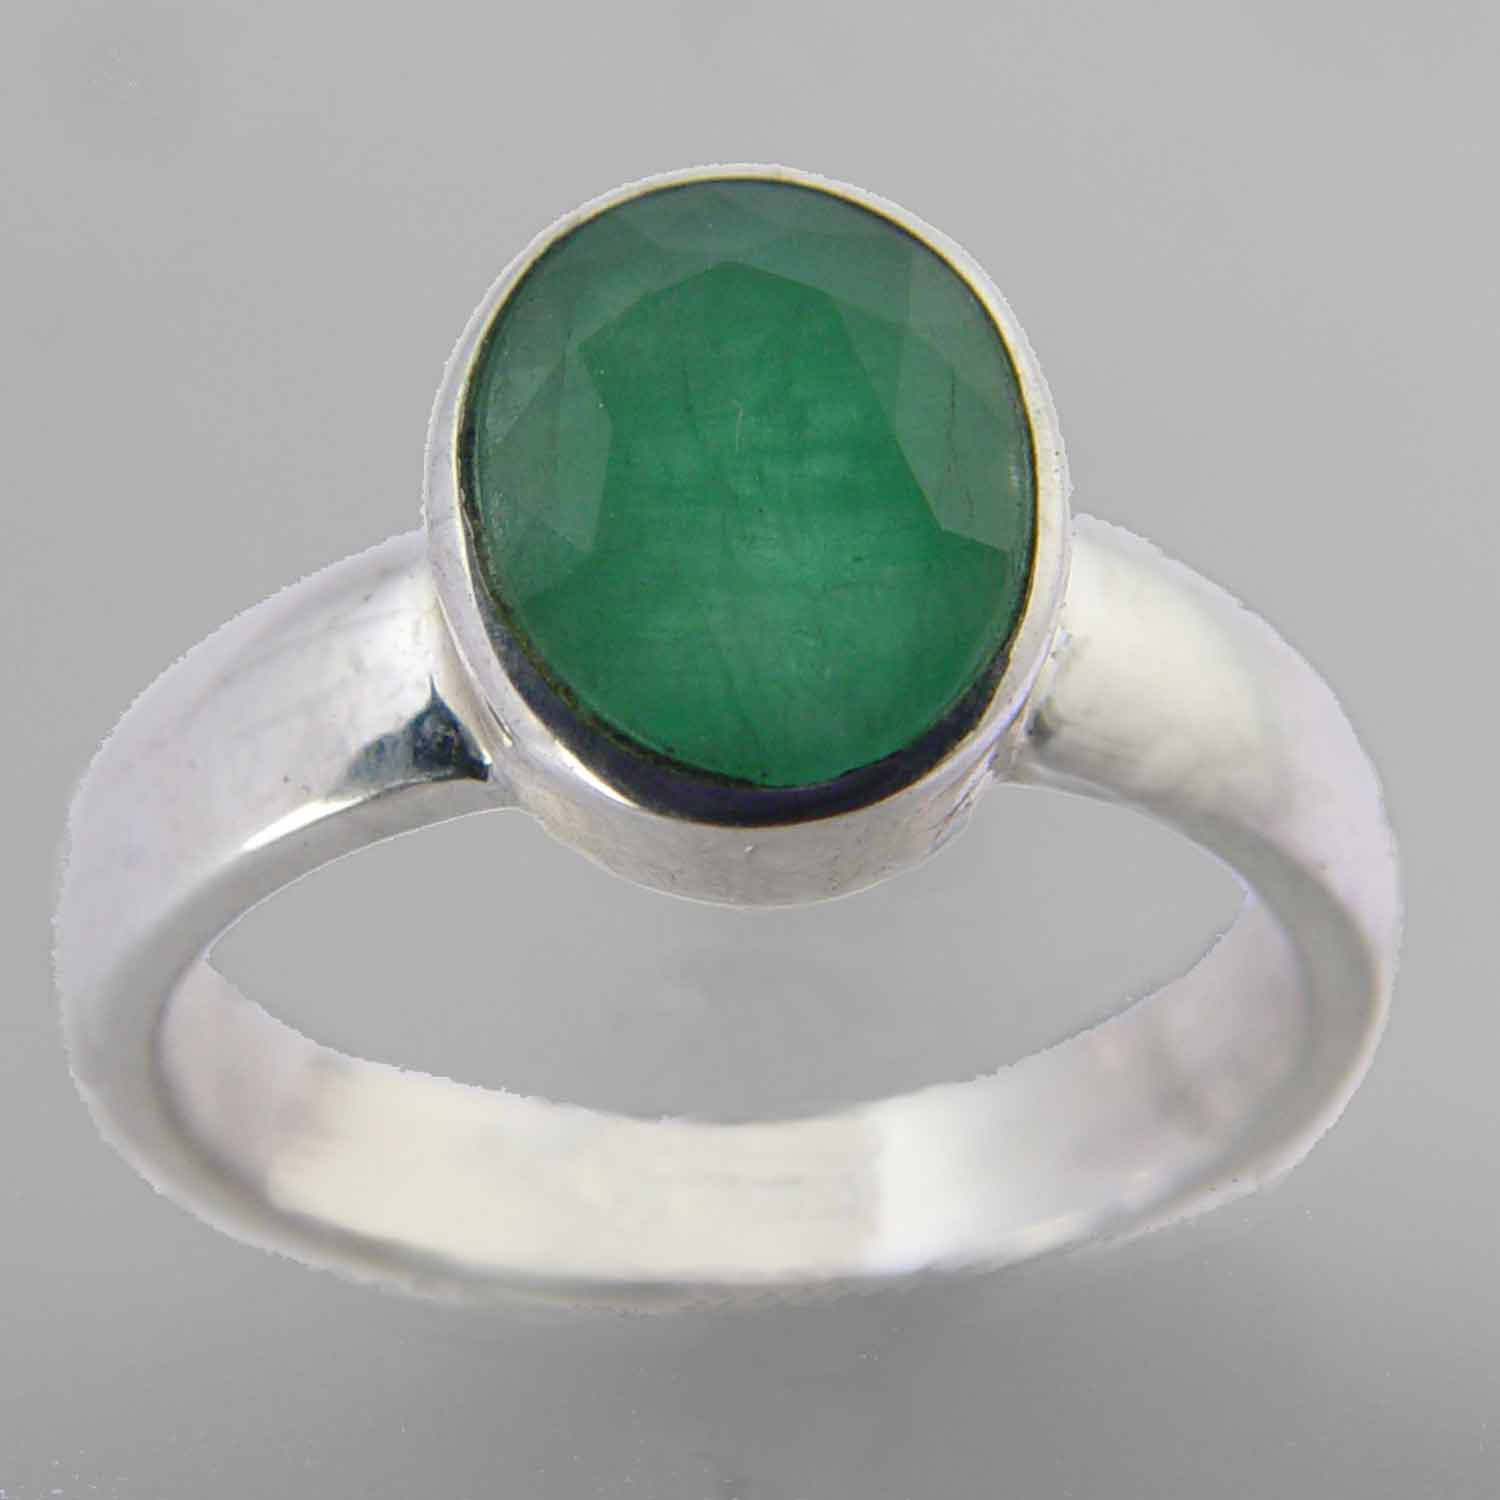 Emerald 2.7 ct Oval Bezel Set Sterling Silver Ring, Size 7